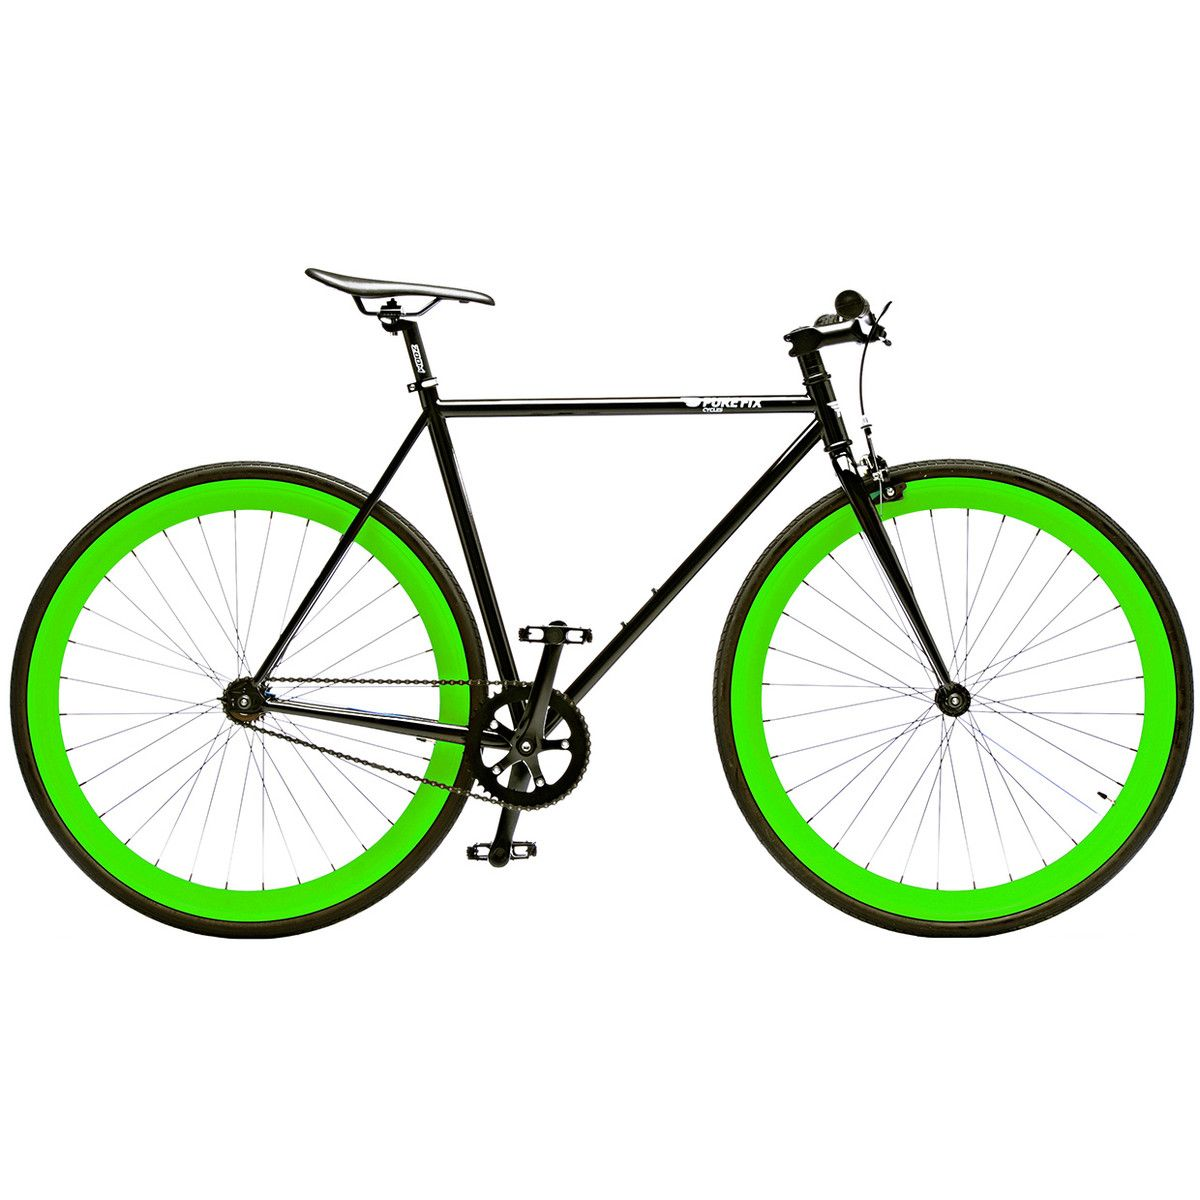 The Hotel Glow Fixie | Products I Find Interesting | Pinterest ...